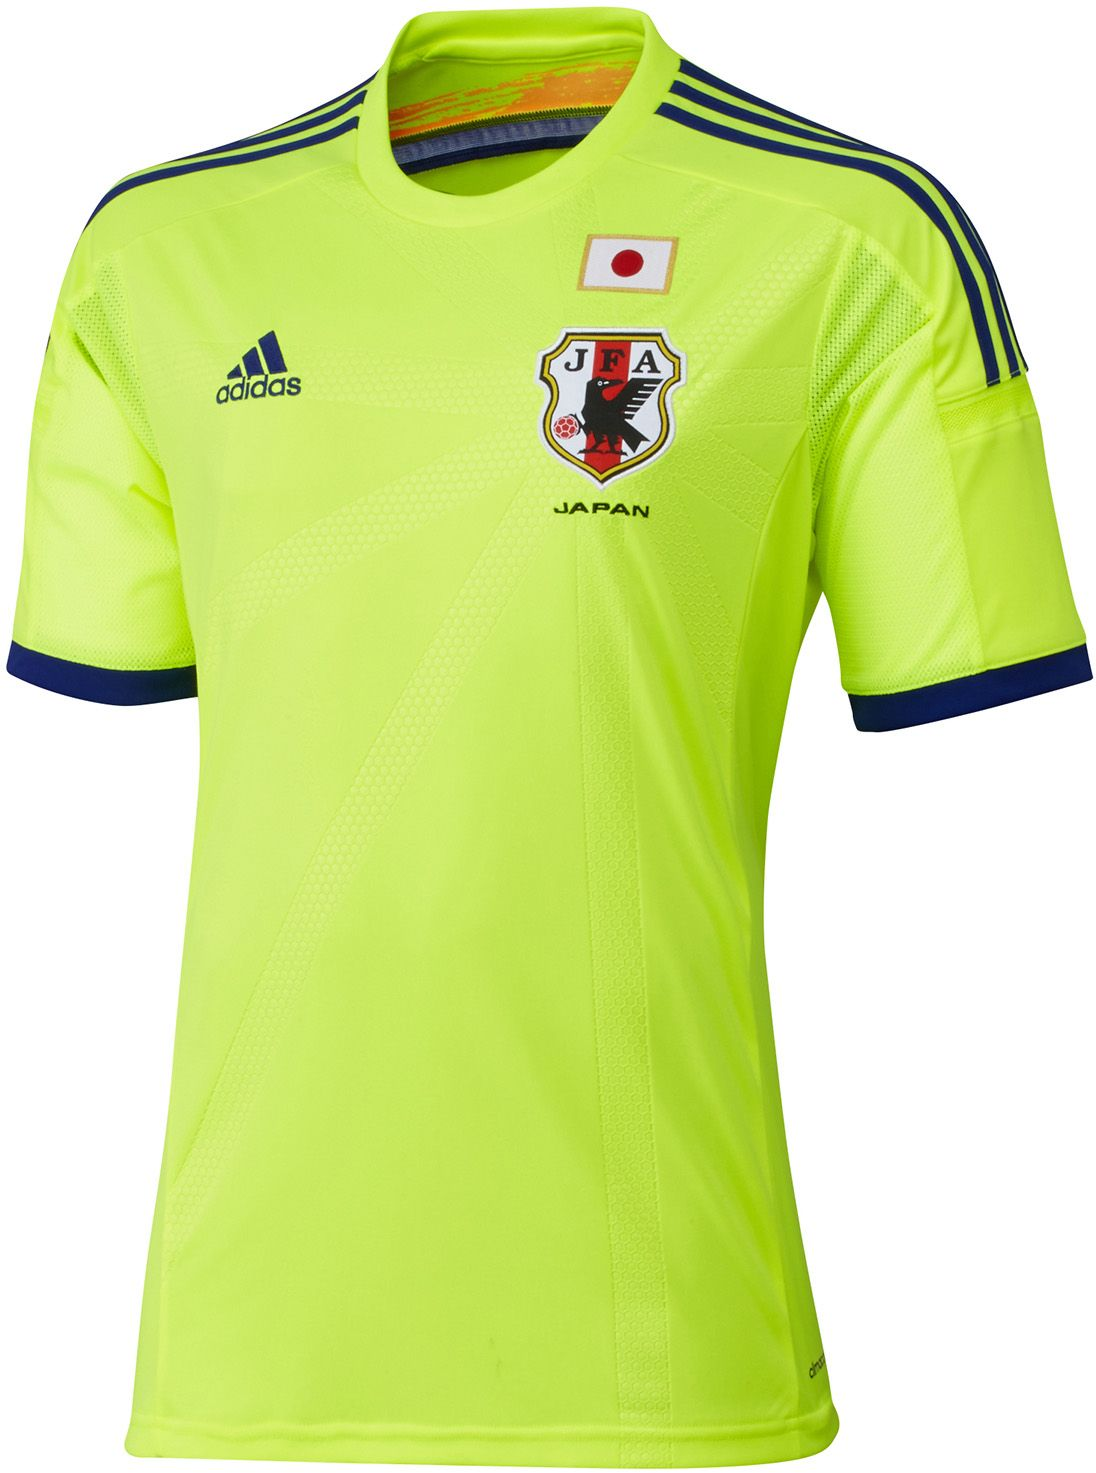 f3db29813b6 Check out Japan s jerseys for the 2014 World Cup (psst